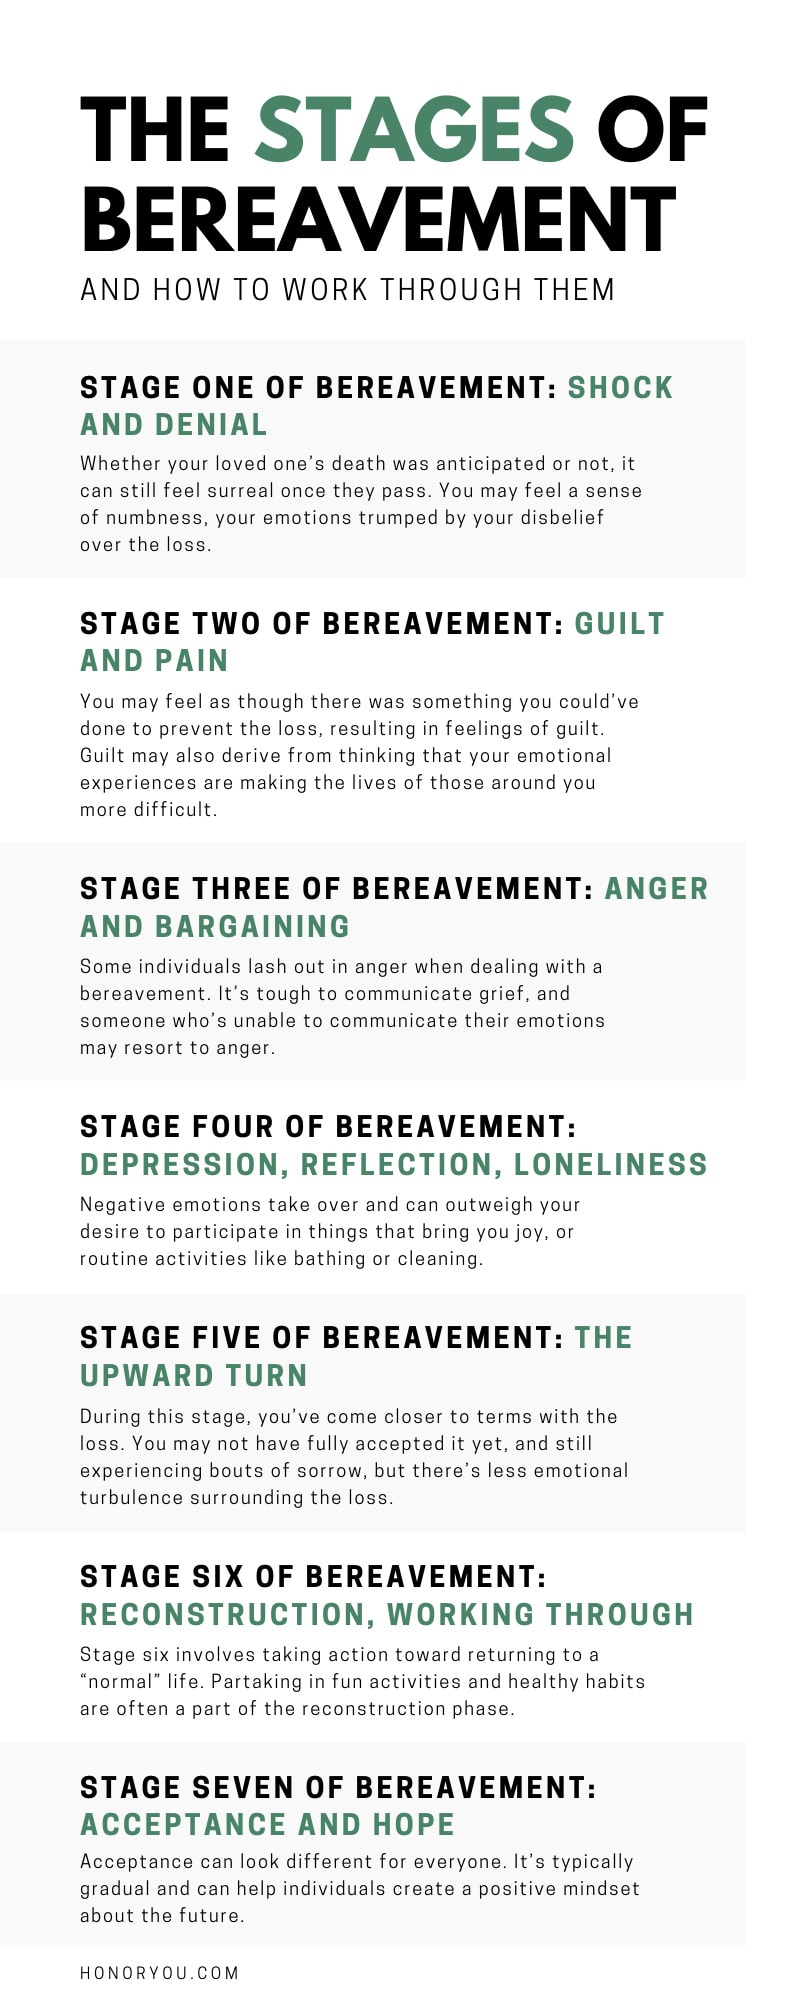 The Stages of Bereavement and How to Work Through Them